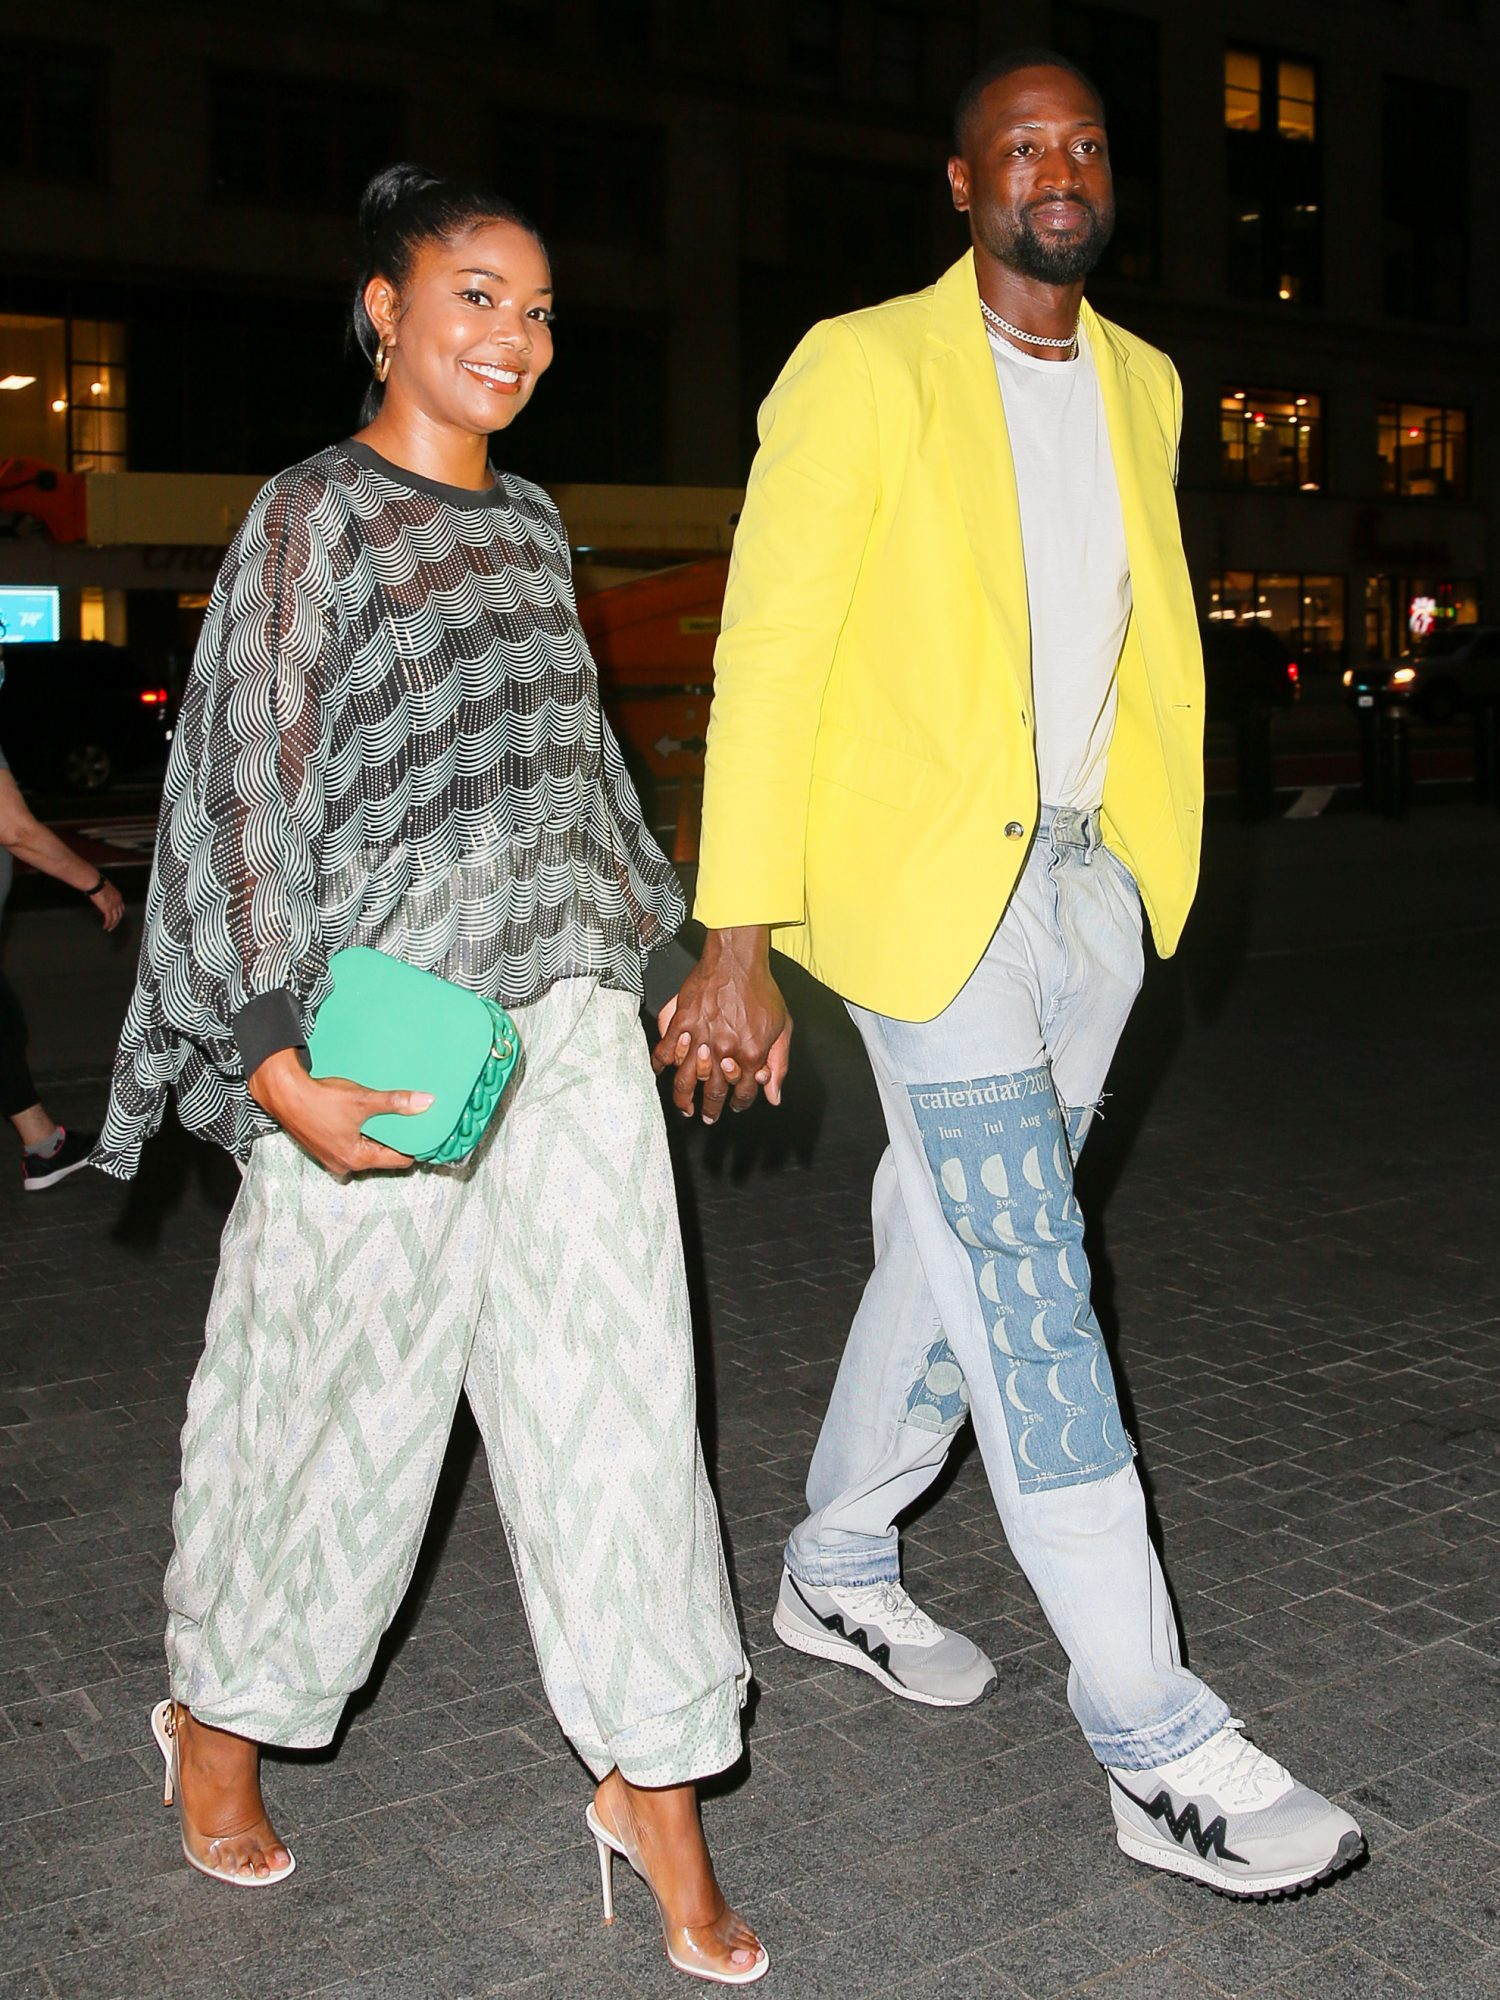 Gabrielle Union and Dwyane Wade are all smiling while arriving at Le Pavillon for a romantic dinner in NYC, Gabrielle was wearing Giorgio Armani and Dwyane wore a yellow blazer